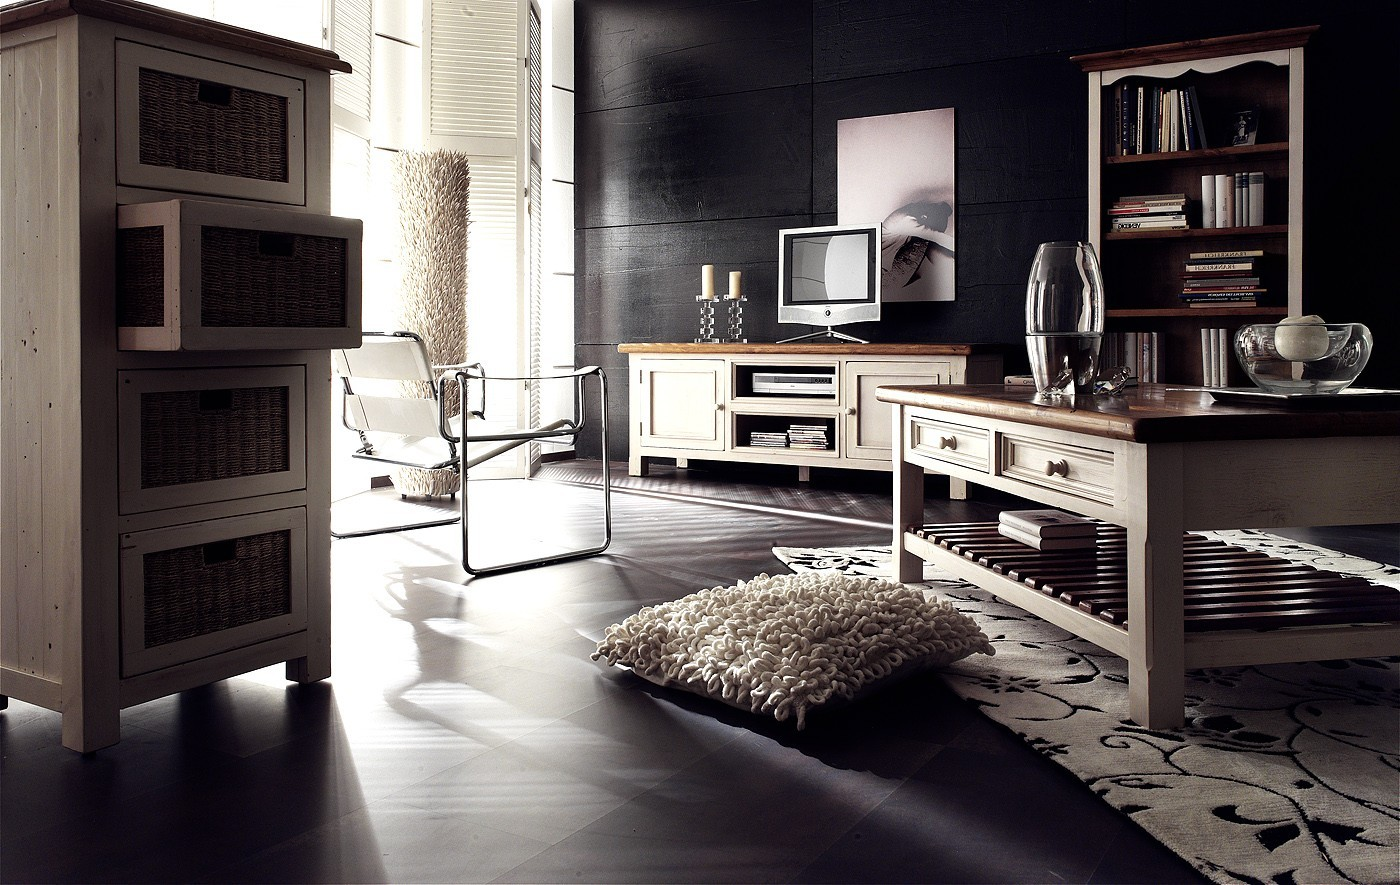 vintage landhaus kommode mit rattank rben bodde m bel g nstig kaufen. Black Bedroom Furniture Sets. Home Design Ideas